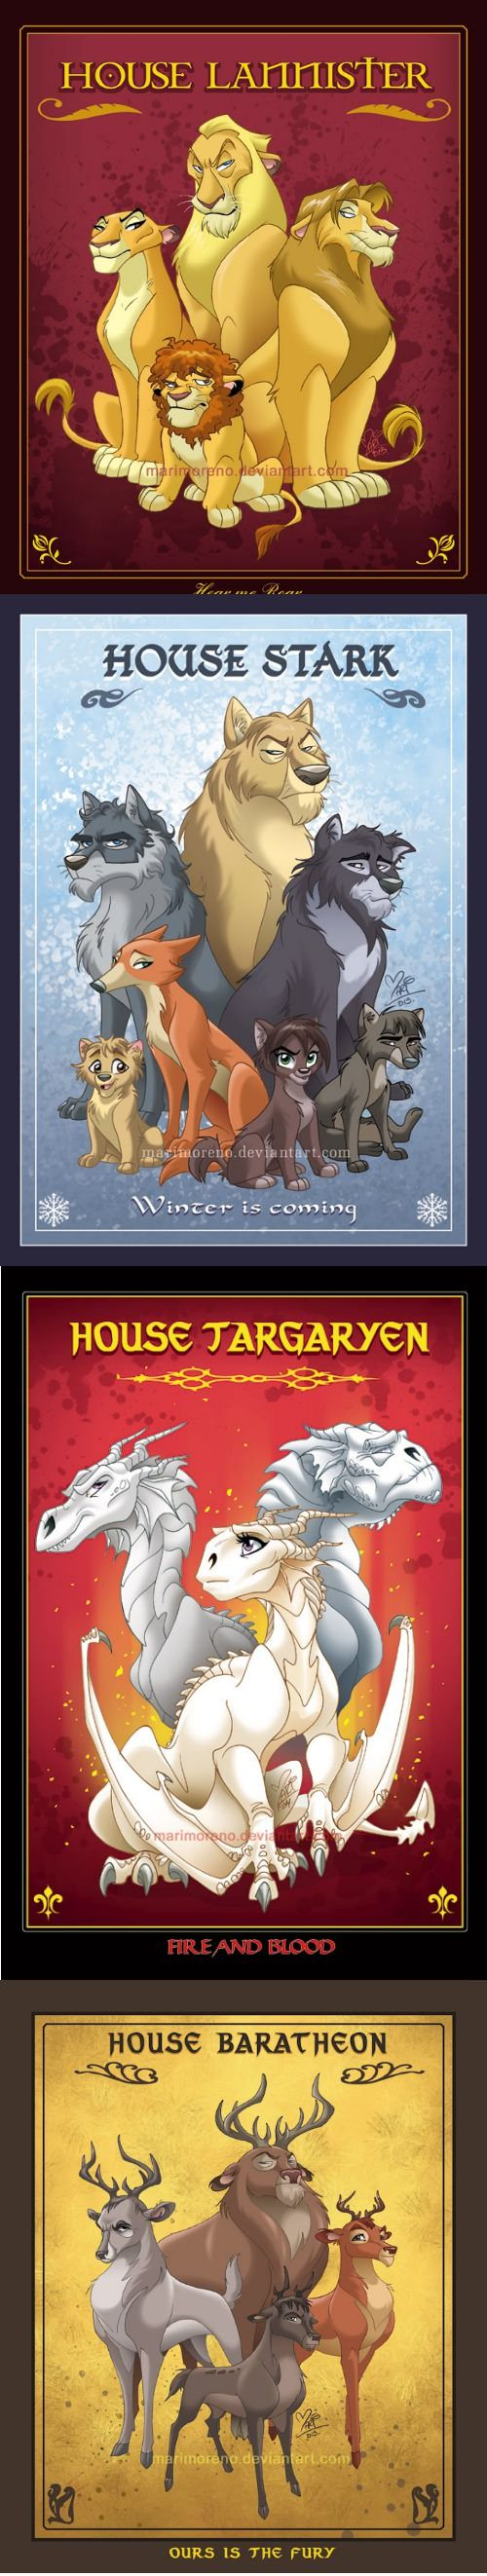 Disney Game of Thrones... House Lannister is the best one but the Arya wolf looks exactly like her